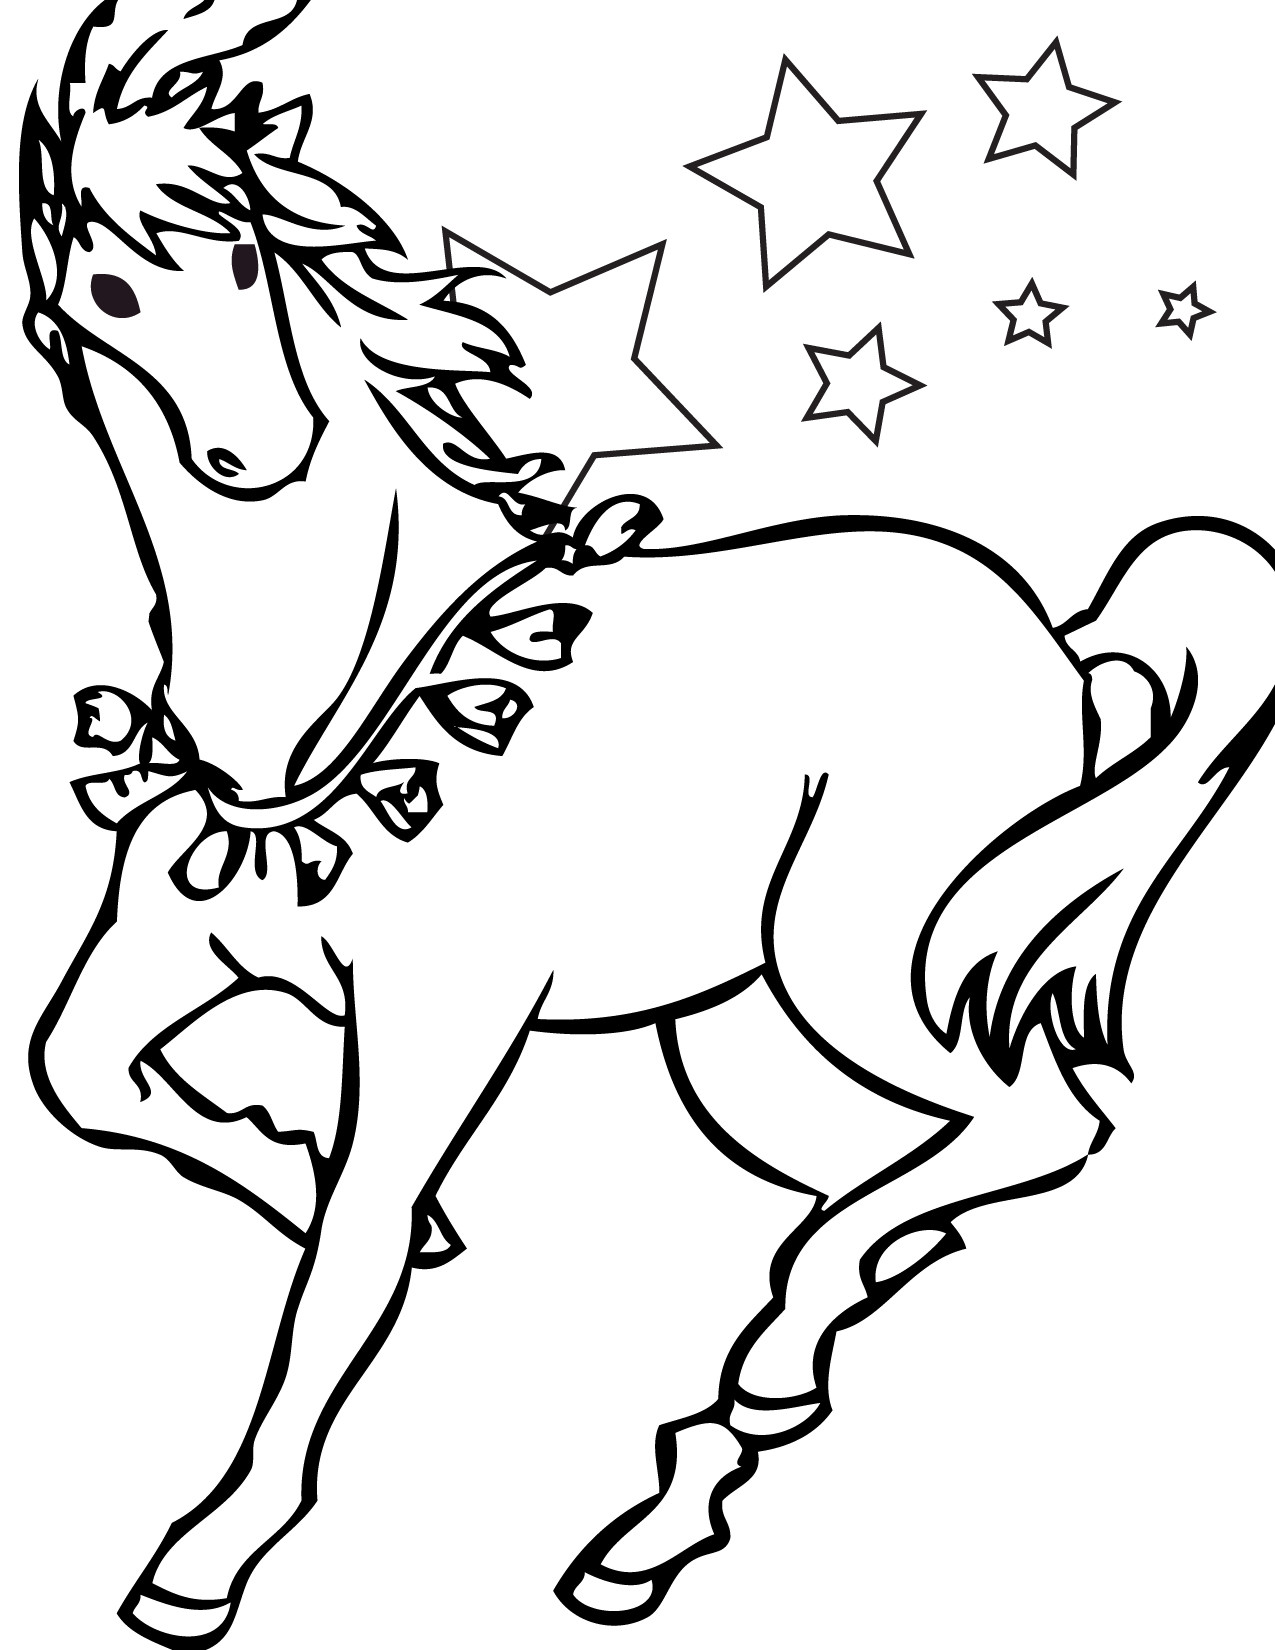 Best ideas about Free Coloring Pages Com . Save or Pin Appaloosa Horse Coloring Page Free Printable Coloring Now.